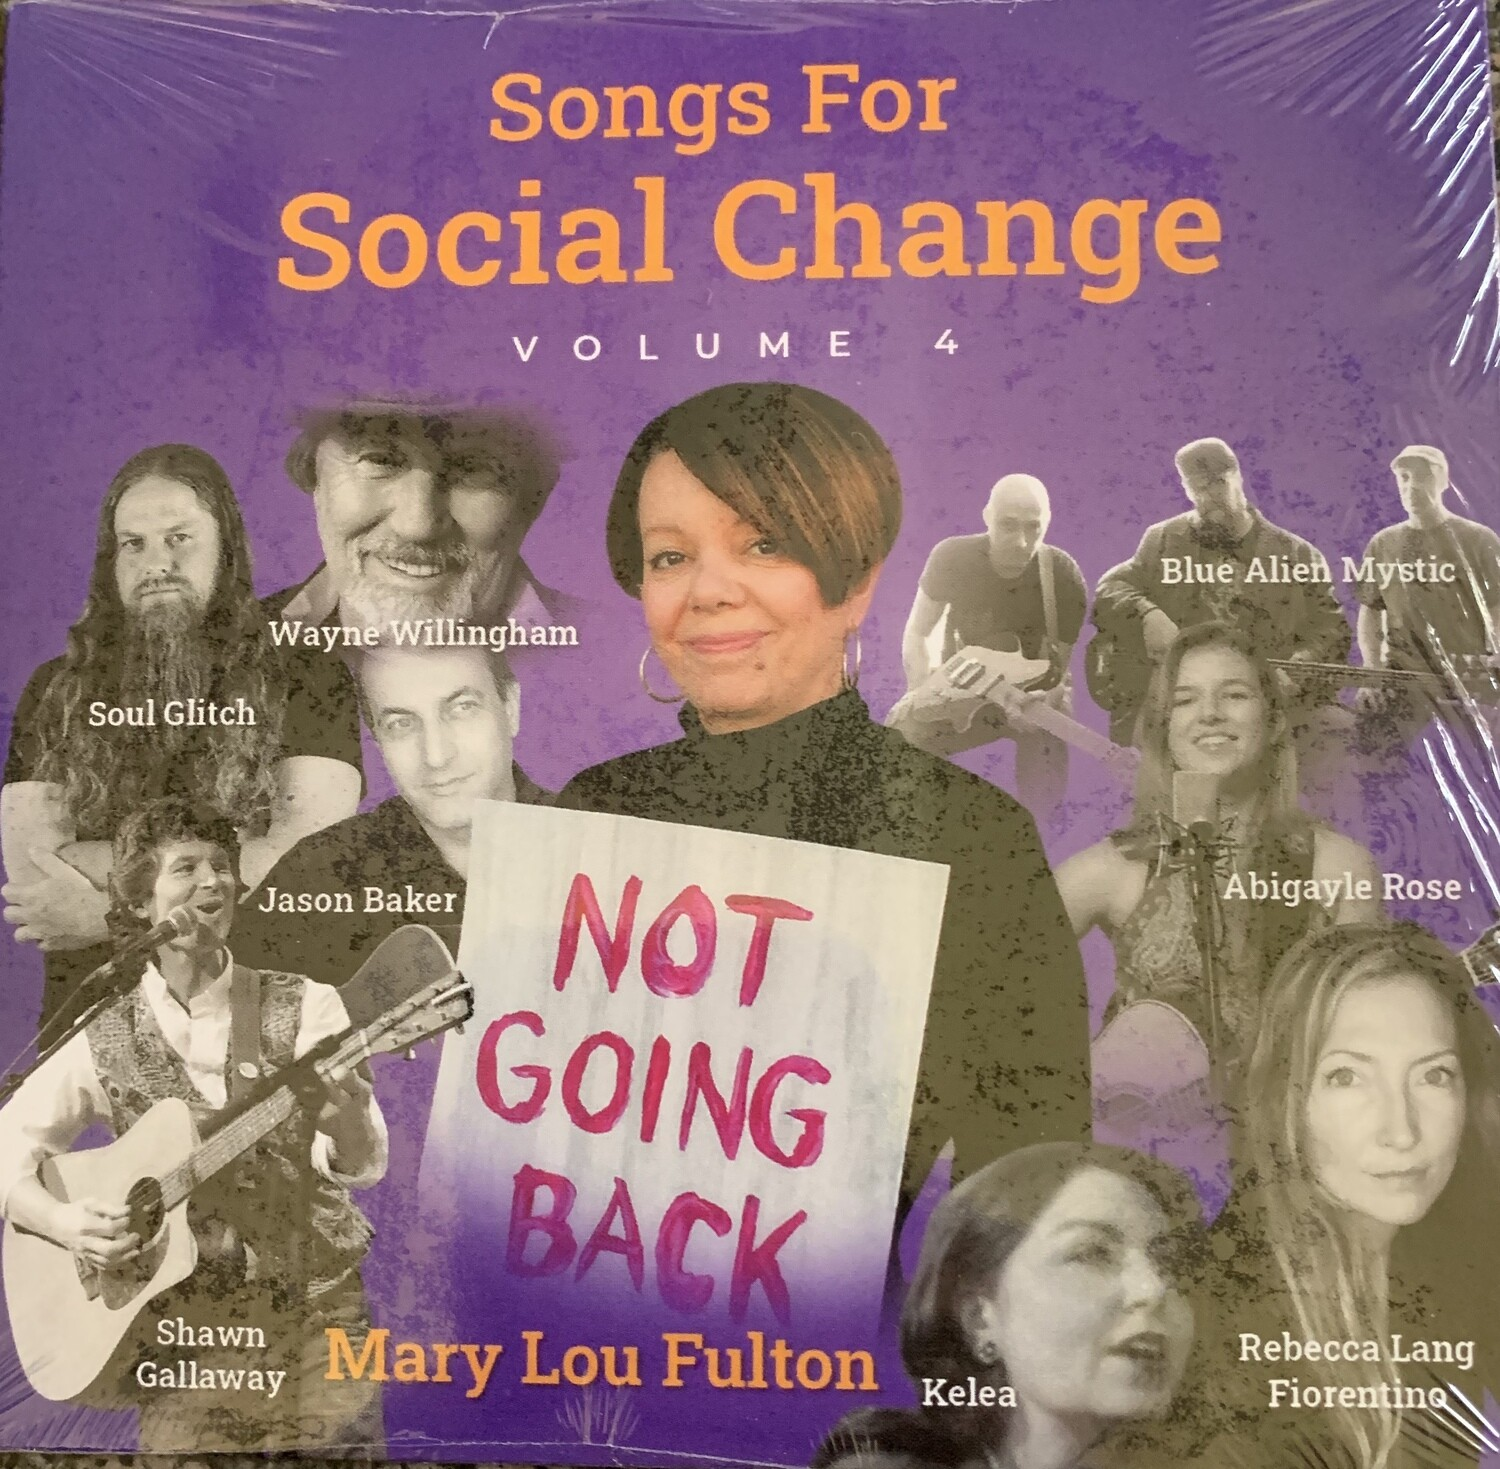 Songs for Social Change Vol. 4